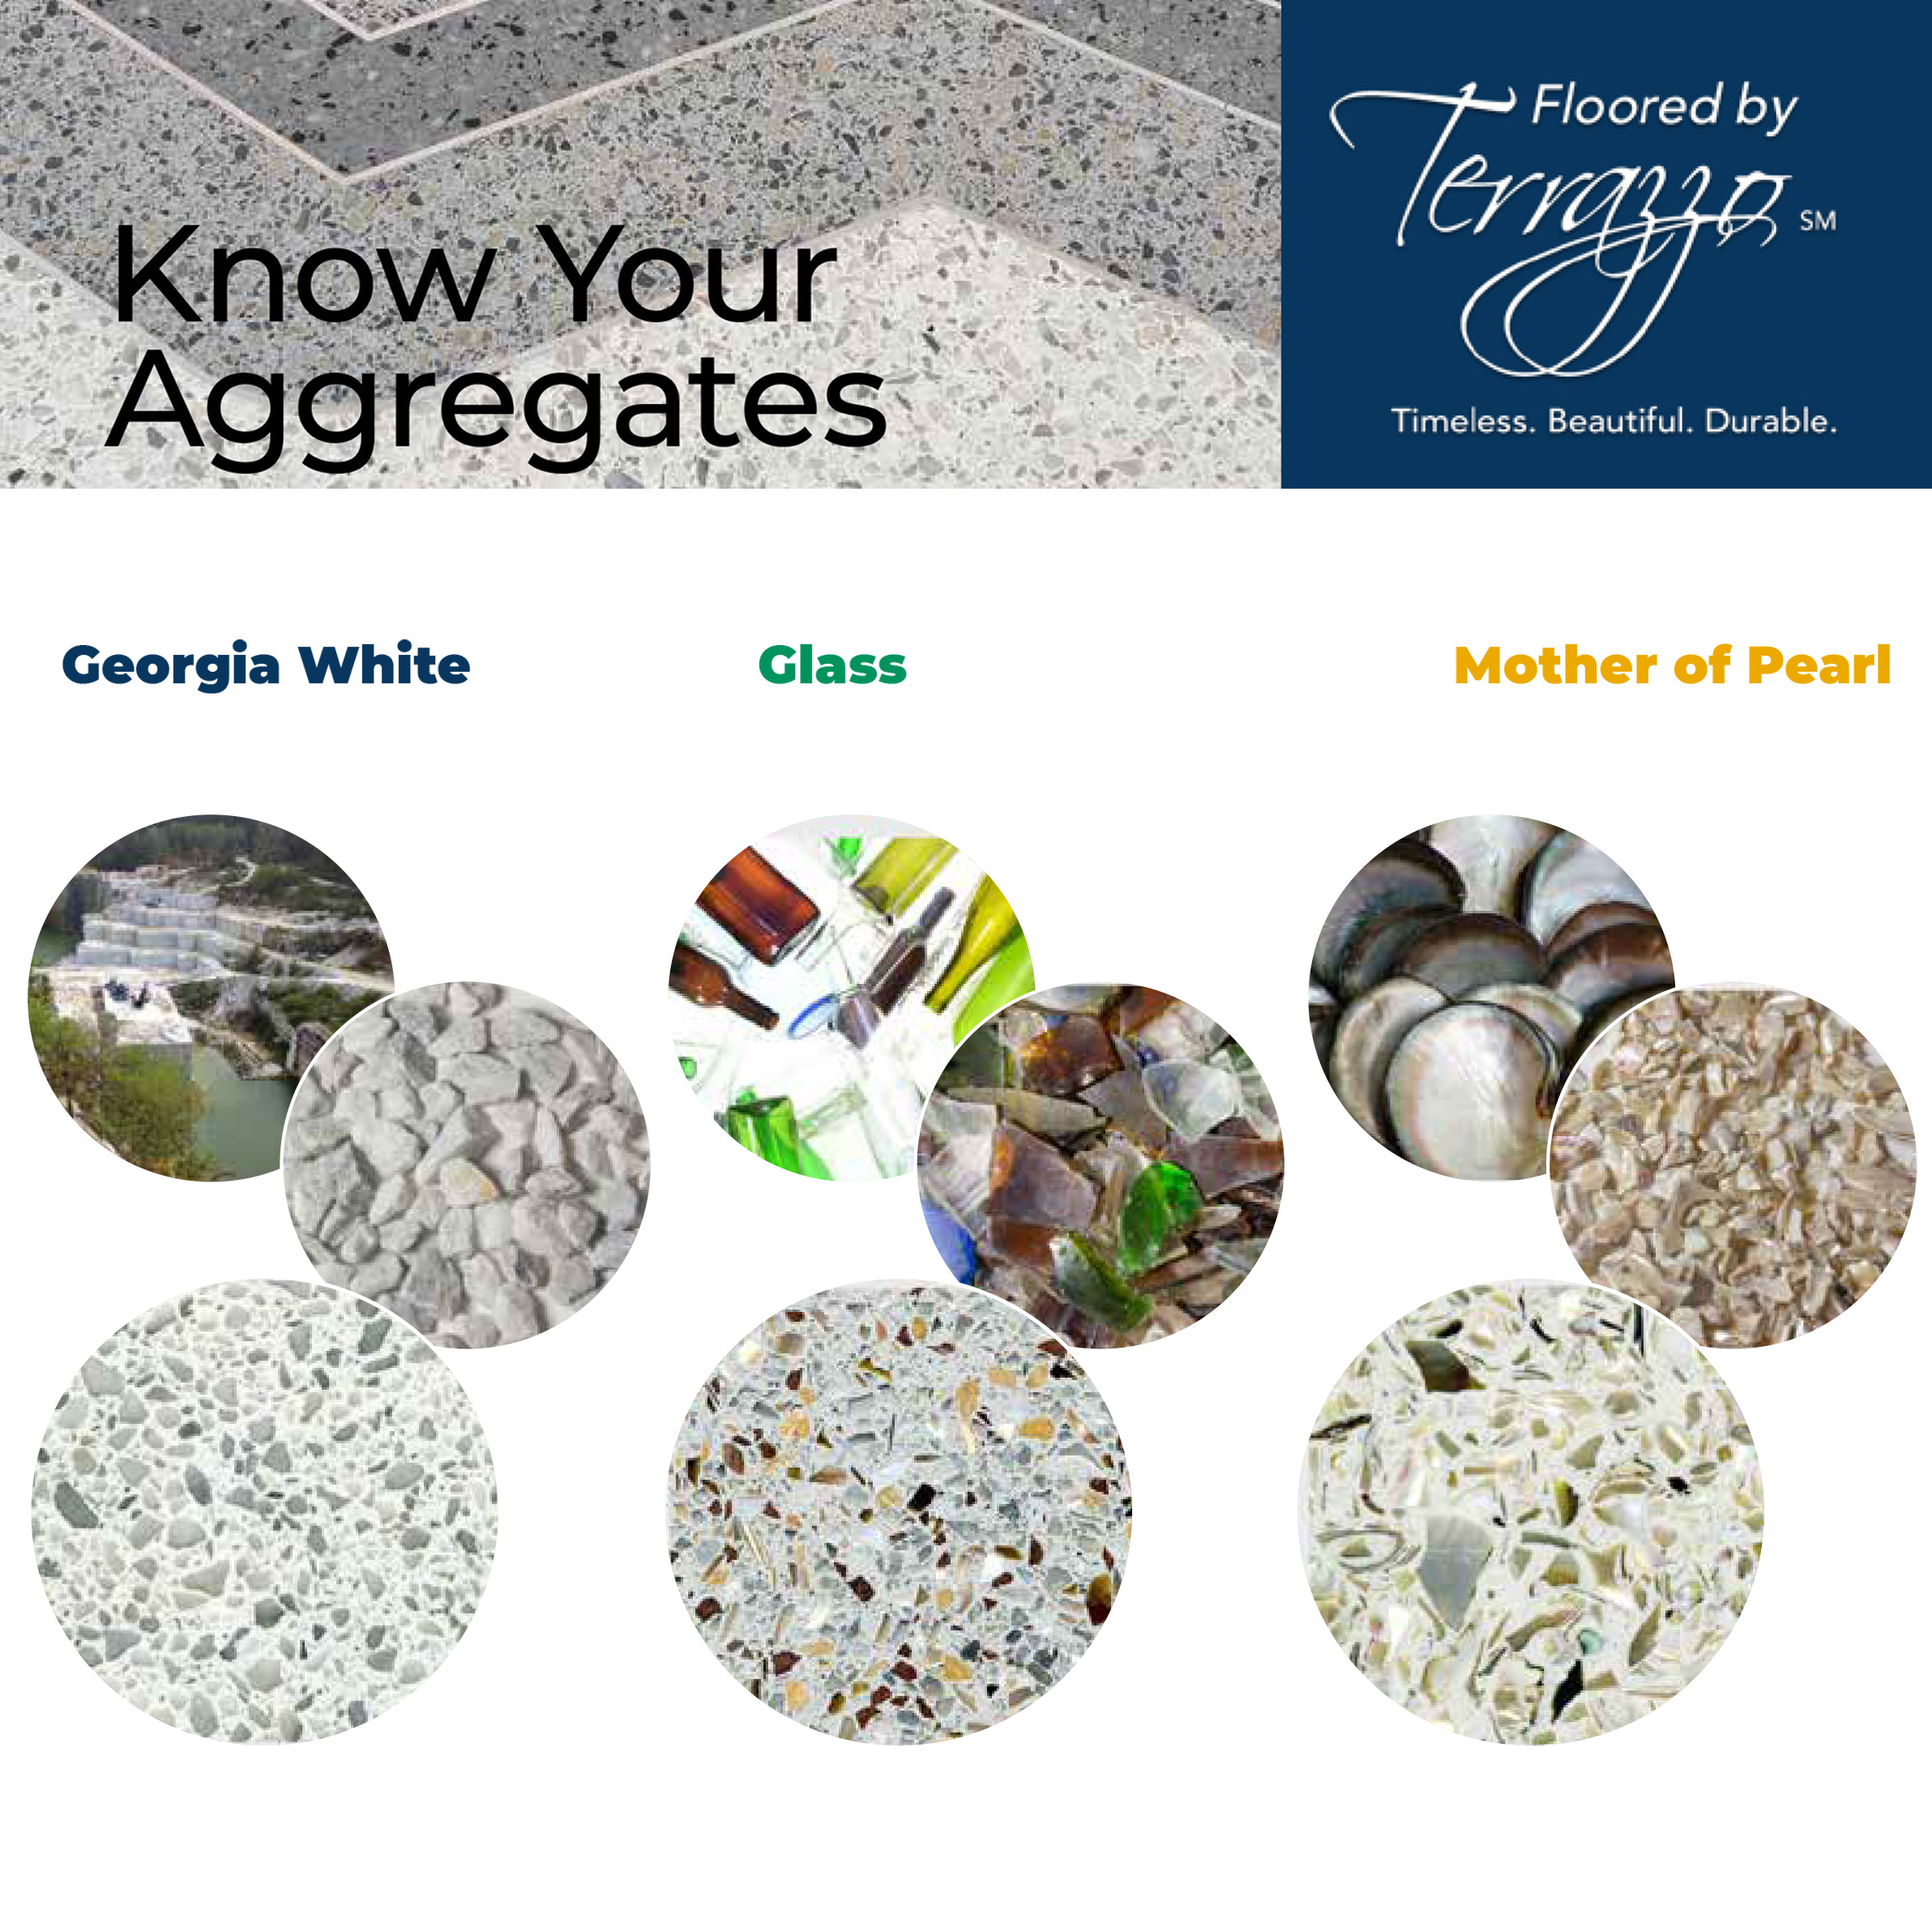 Know Your Aggregates